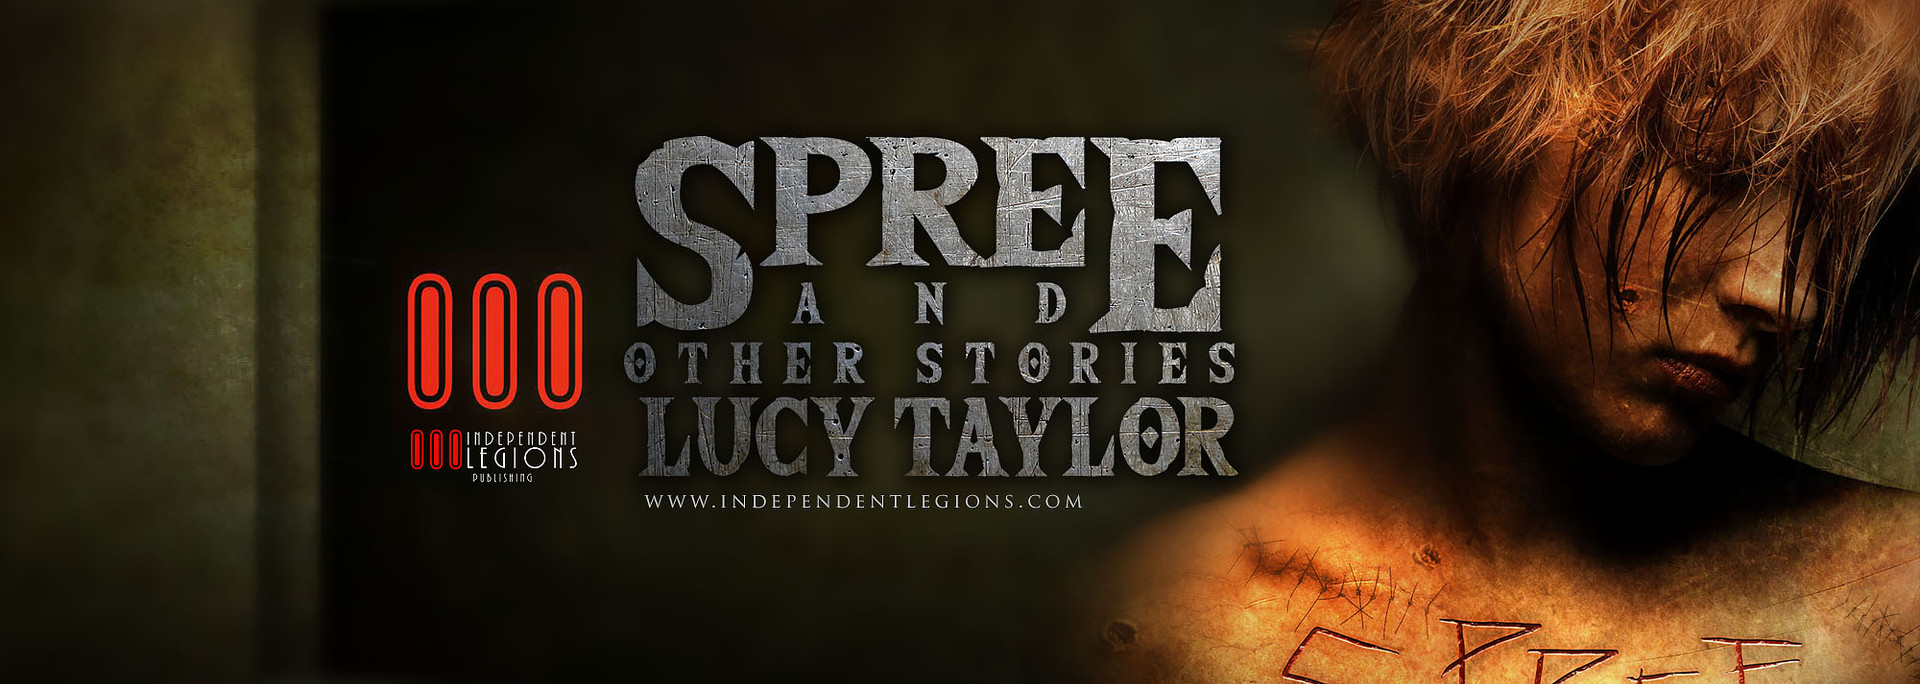 spree-Cover-lucy-by Sabercore23 copy.jpg